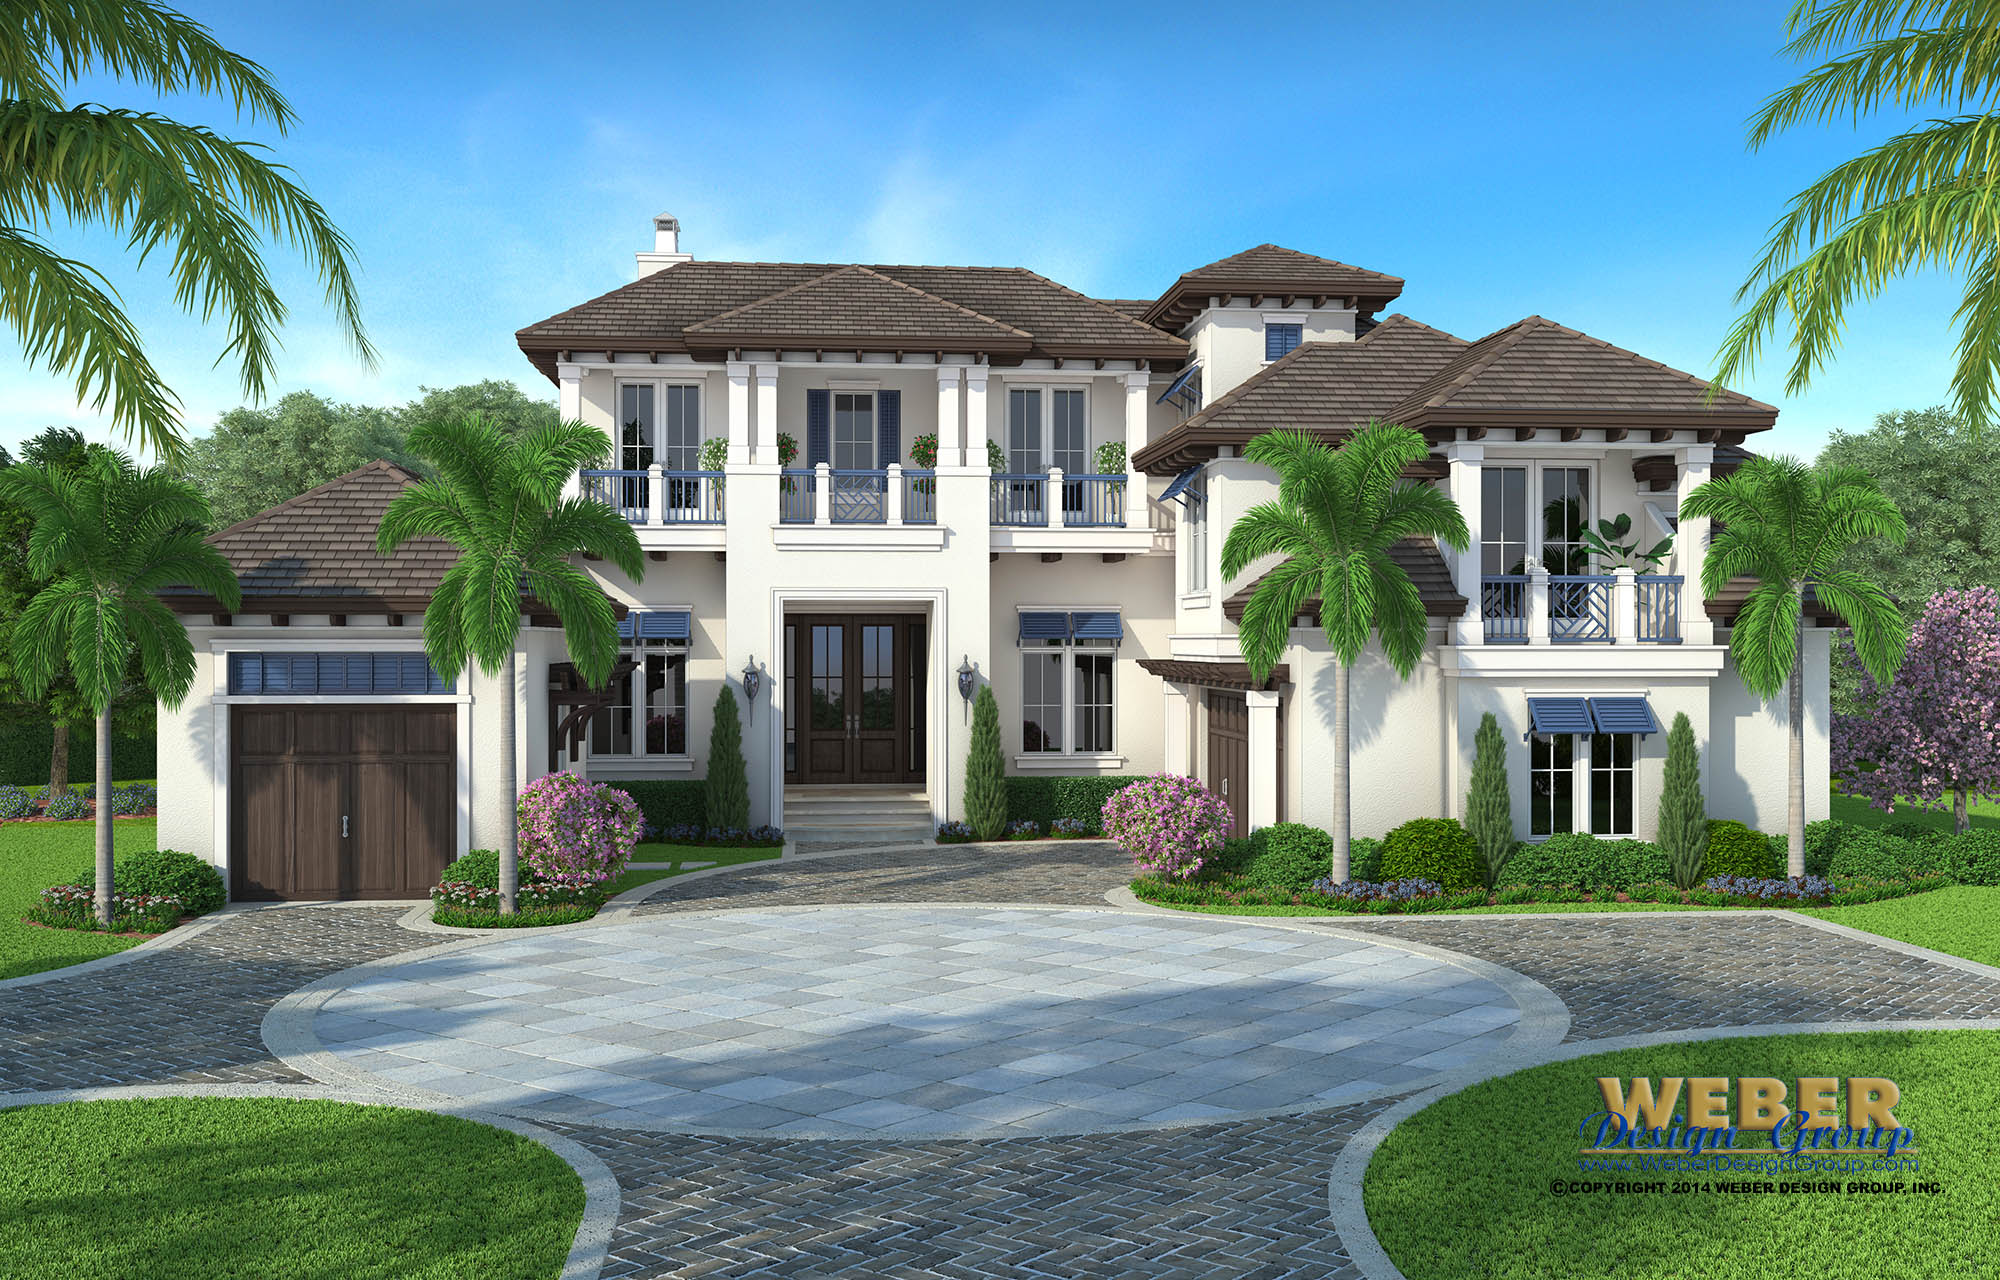 West In s House Plan Coastal Contemporary Home Floor Plan 2 Story